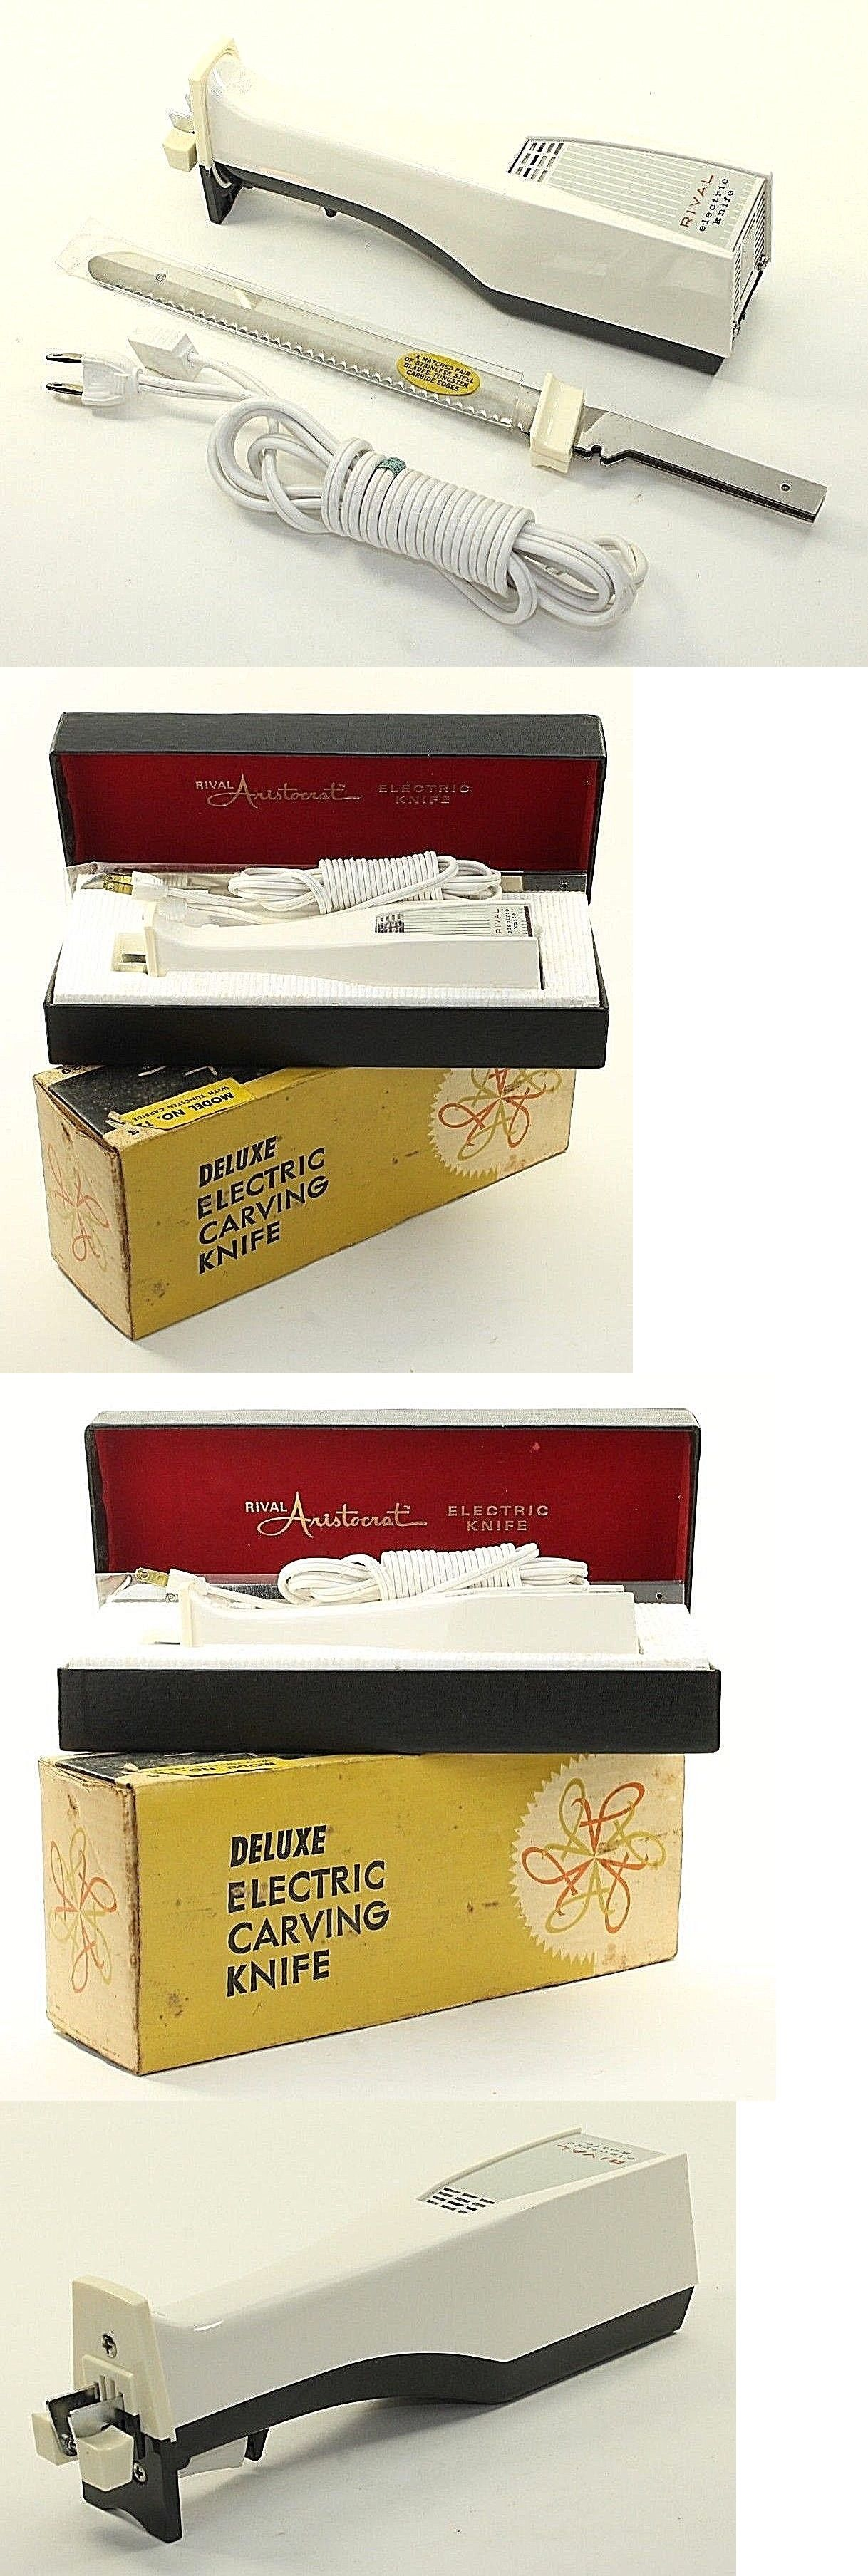 Slicers And Electric Knives 20681 Vintage Rival Aristocrat 1205 6 Electric Carving Knife In Box Kitchen Appliance Buy It Now Carving Knife Knife Chef Knife